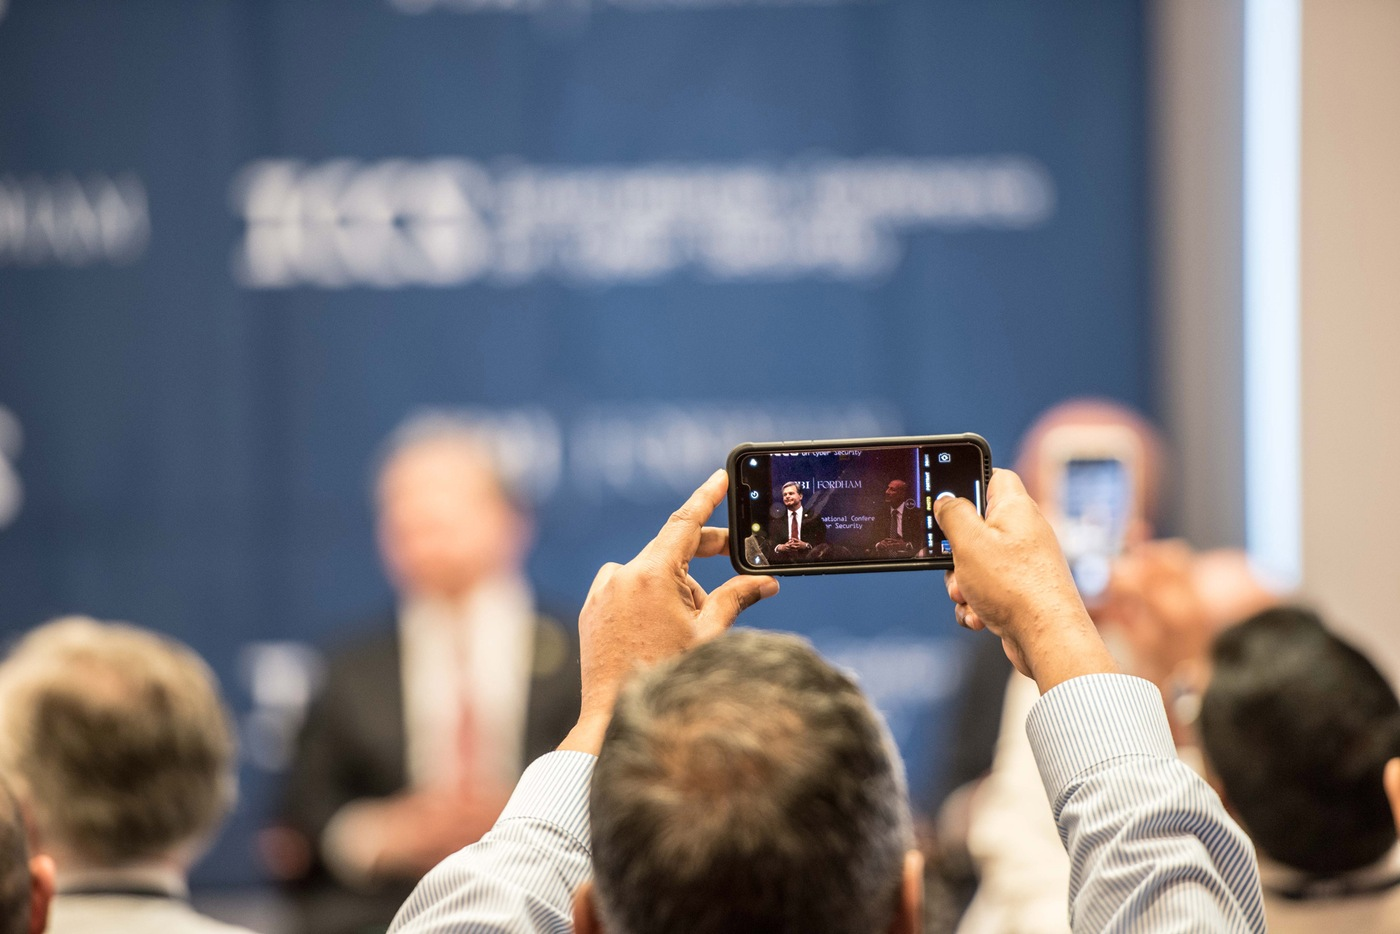 FBI Director Christopher Wray is seen through the phone of an audience member at the Fordham University/FBI-sponsored International Conference on Cyber Security in New York City on July 25, 2019.